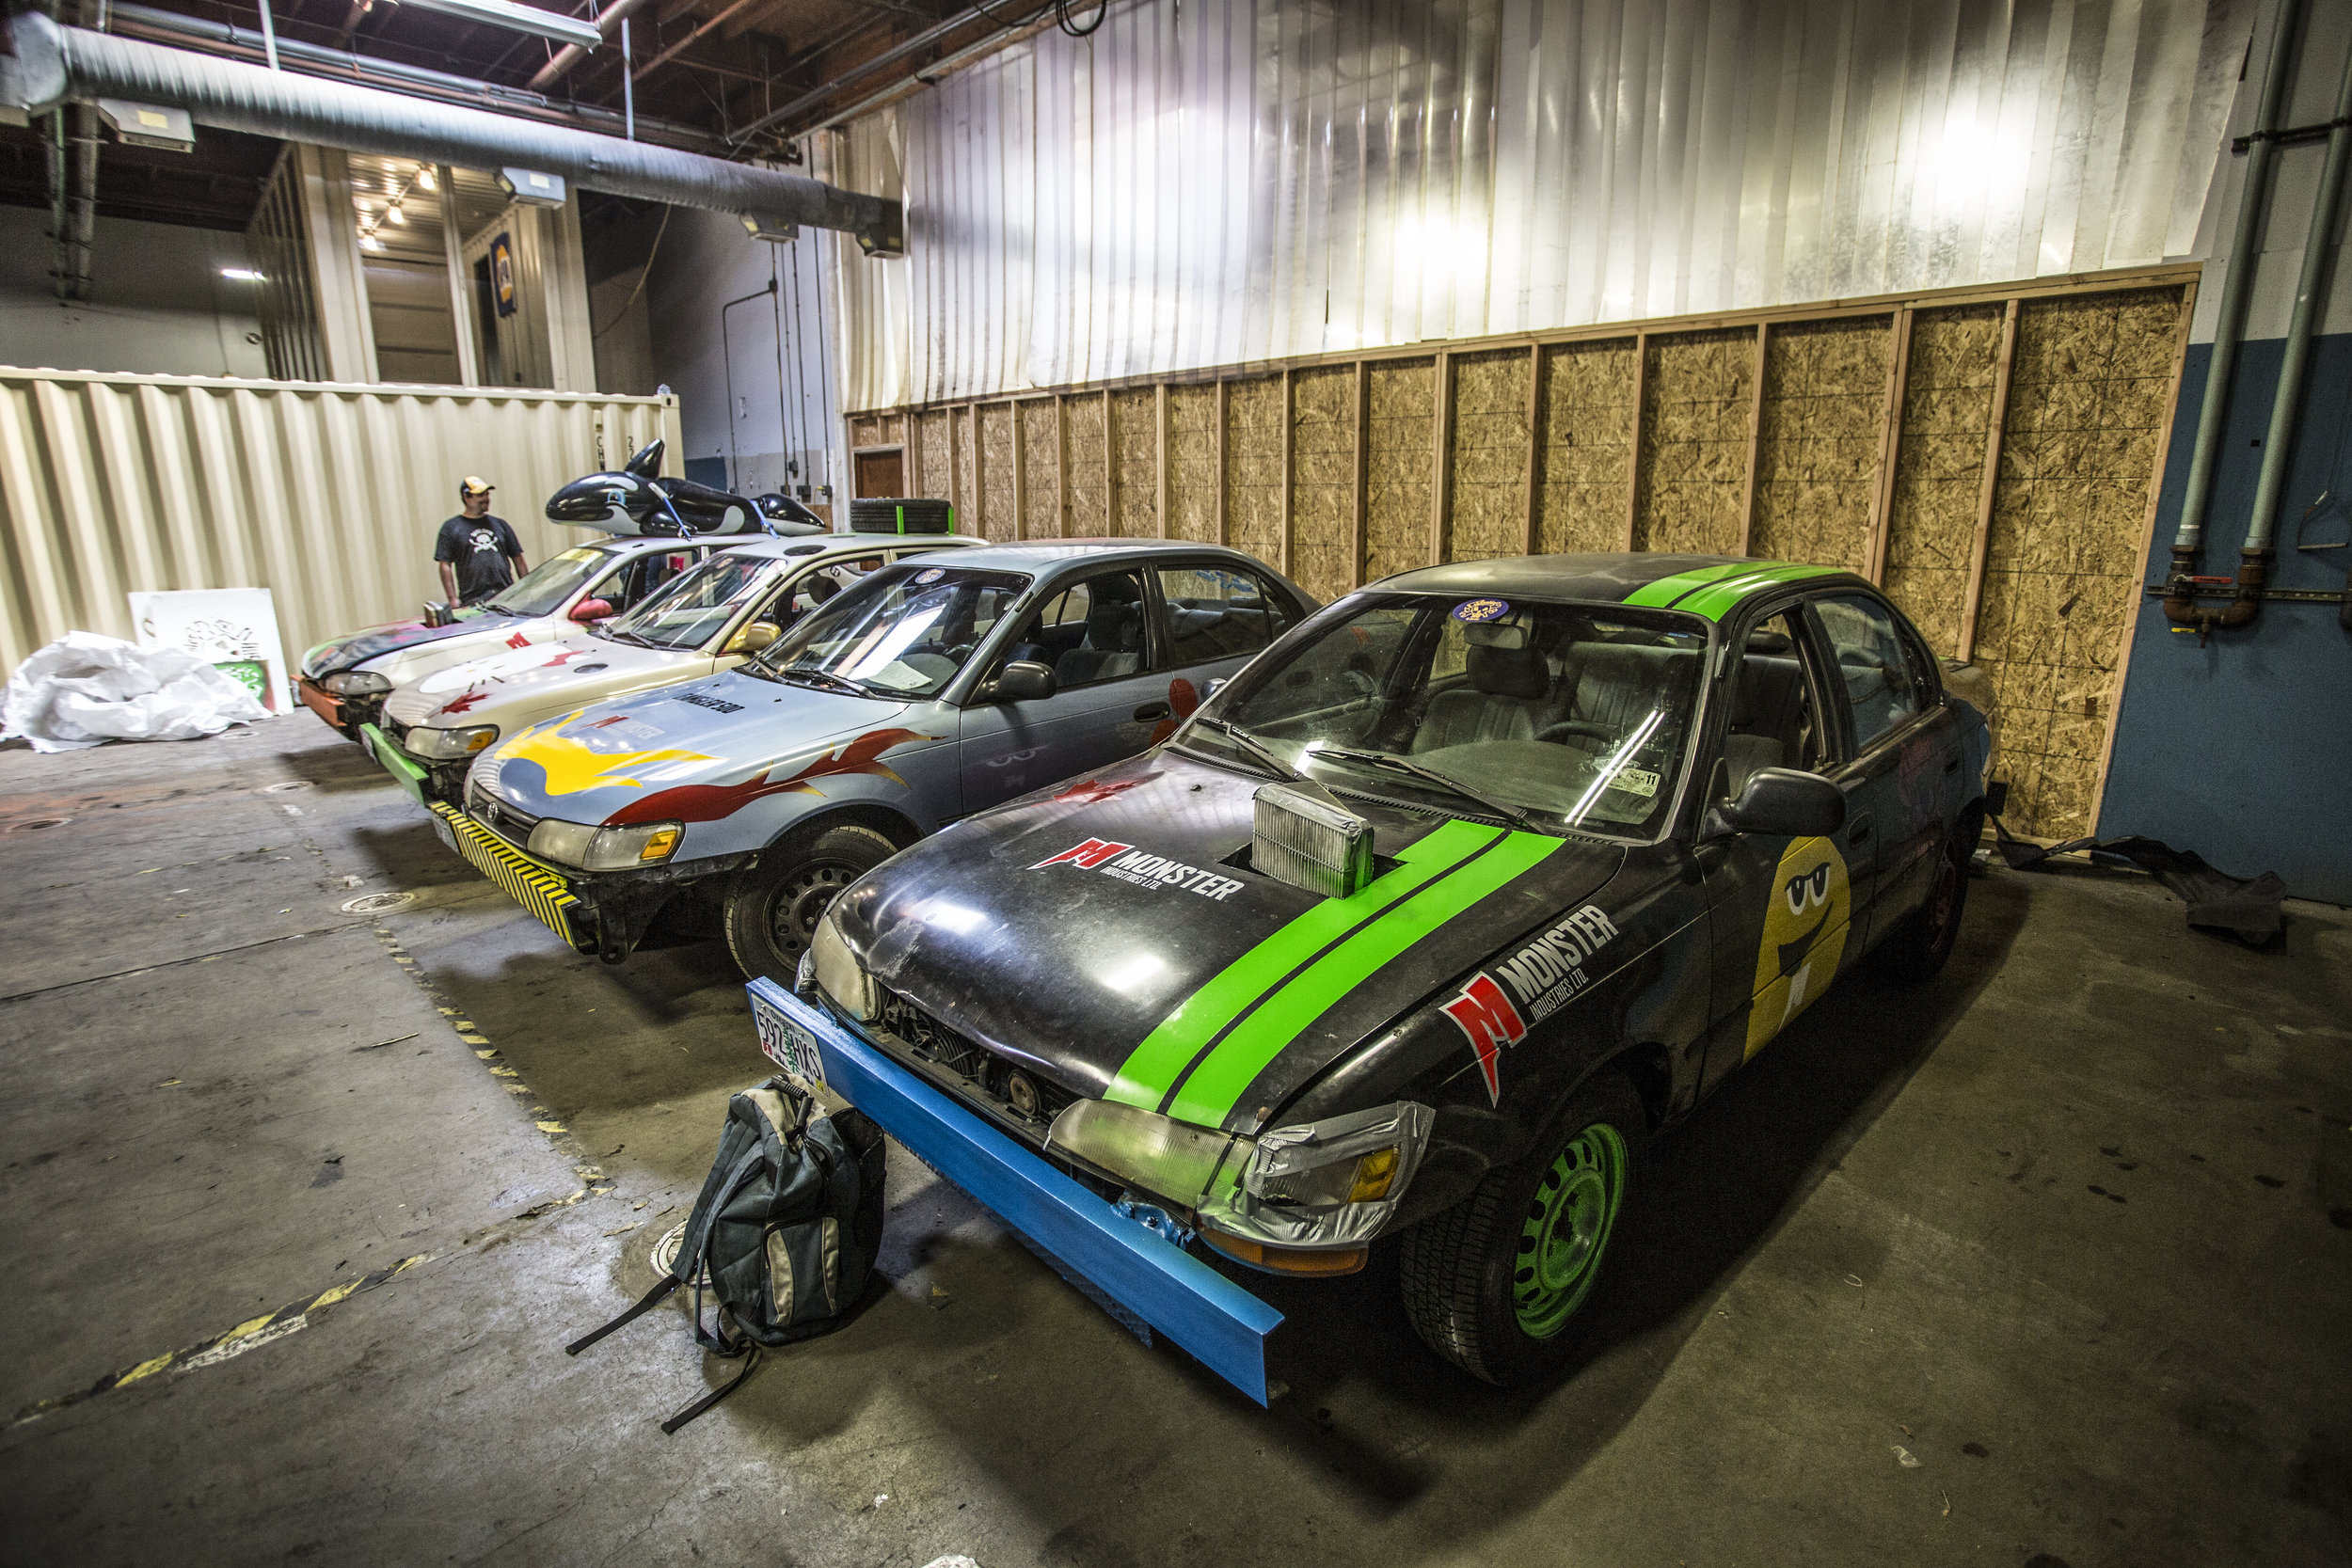 Monster Industries, (  monsterindustries.ca )  a Canadian construction and maintenance company, used the Gambler 500 as a corporate retreat. They bought matching Corollas and came in a day before the race to modify each to their own style.